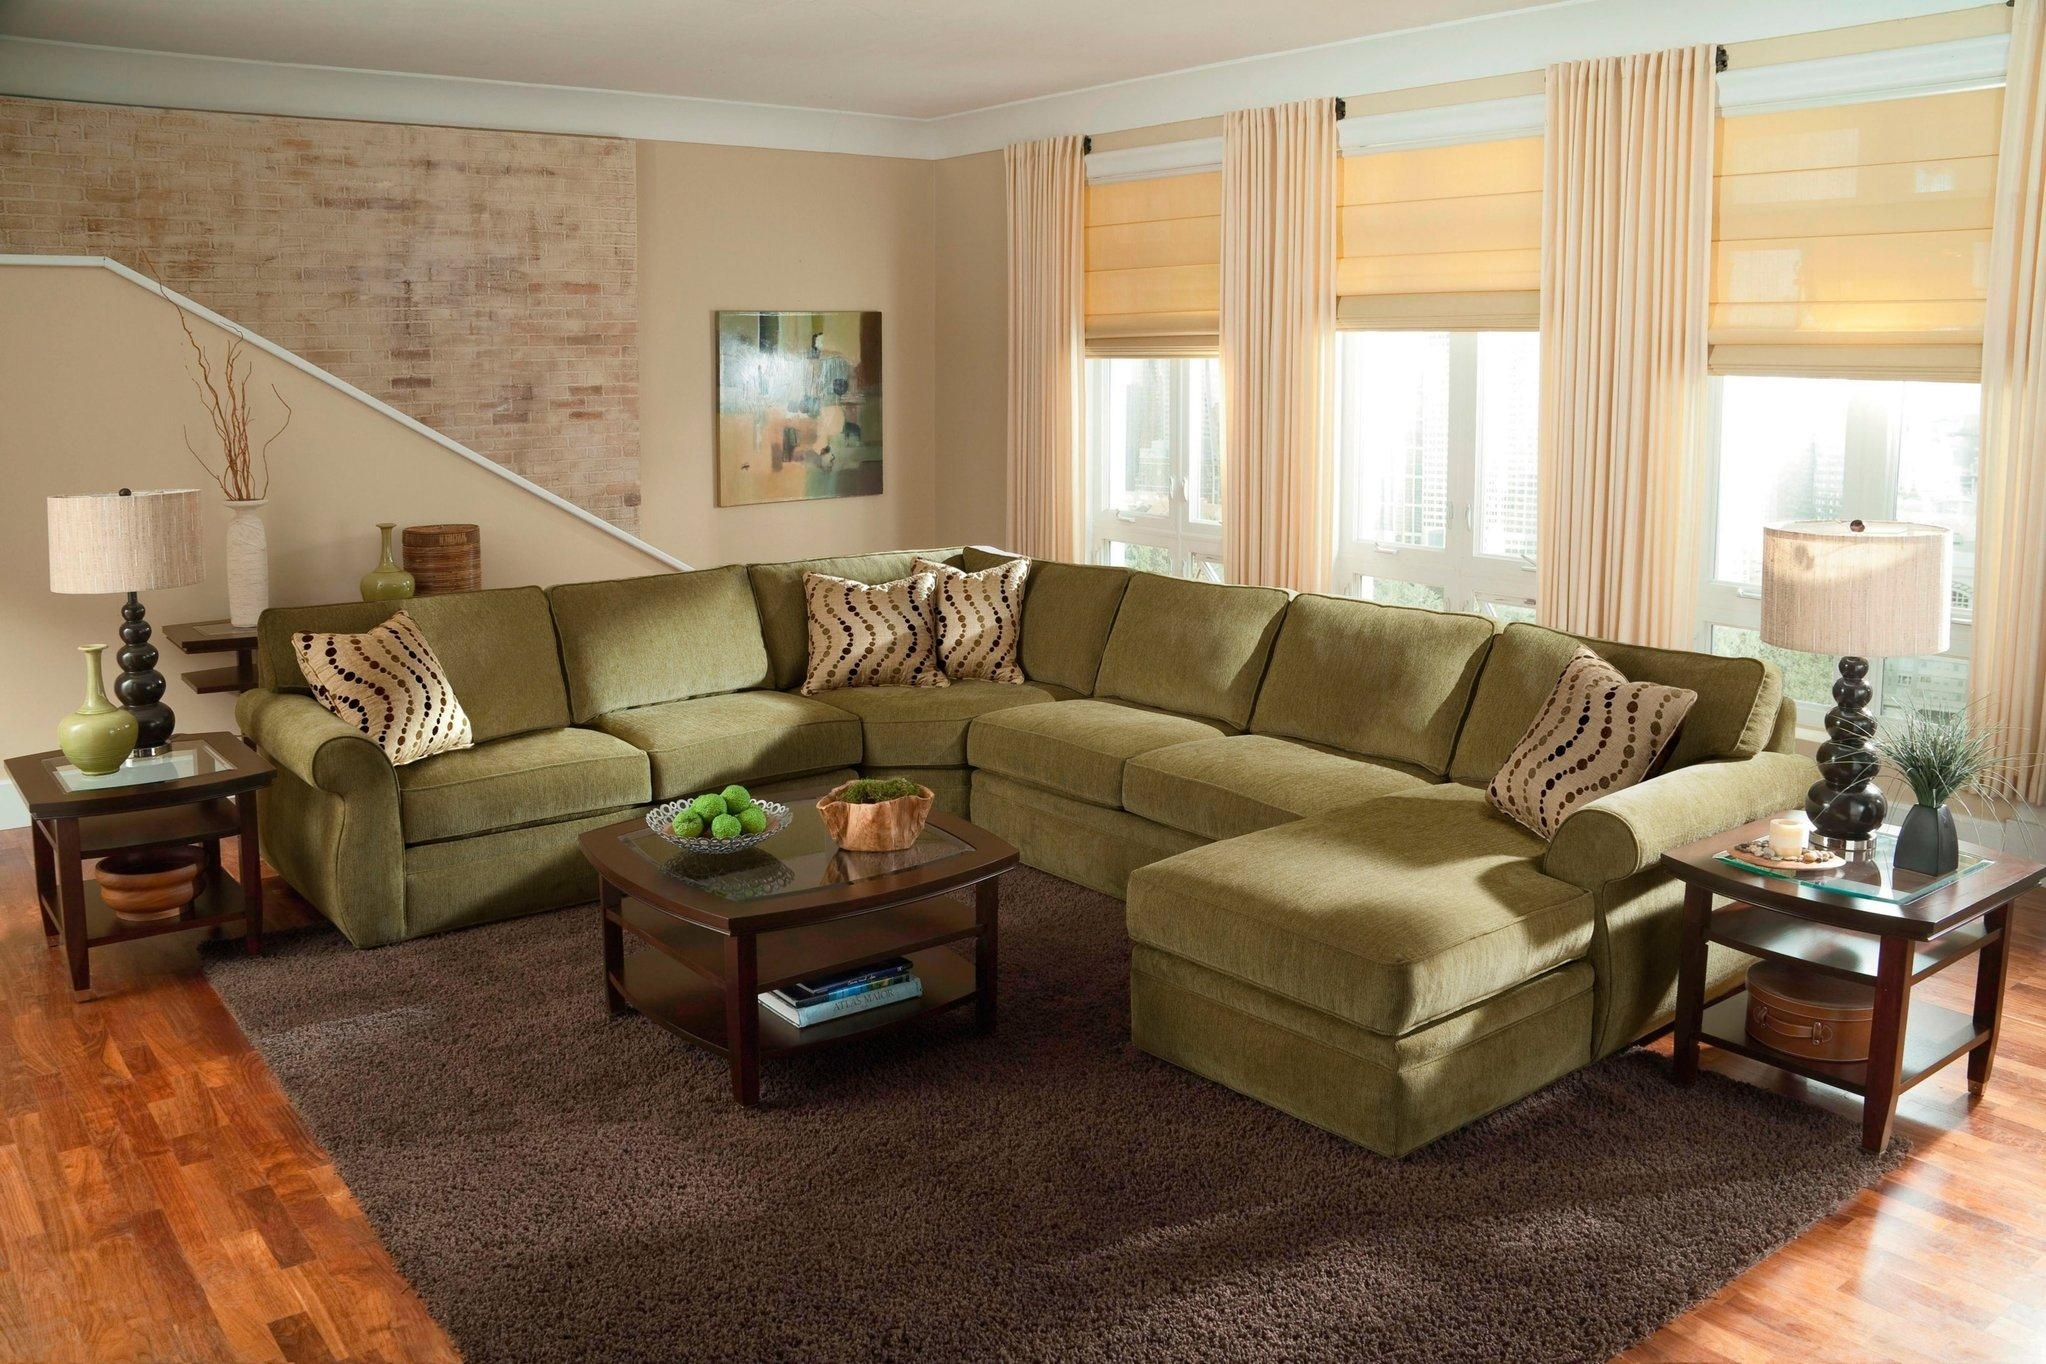 Interior: Luxury Oversized Sectional Sofa For Awesome Living Room Within Large Sofa Sectionals (Image 14 of 20)